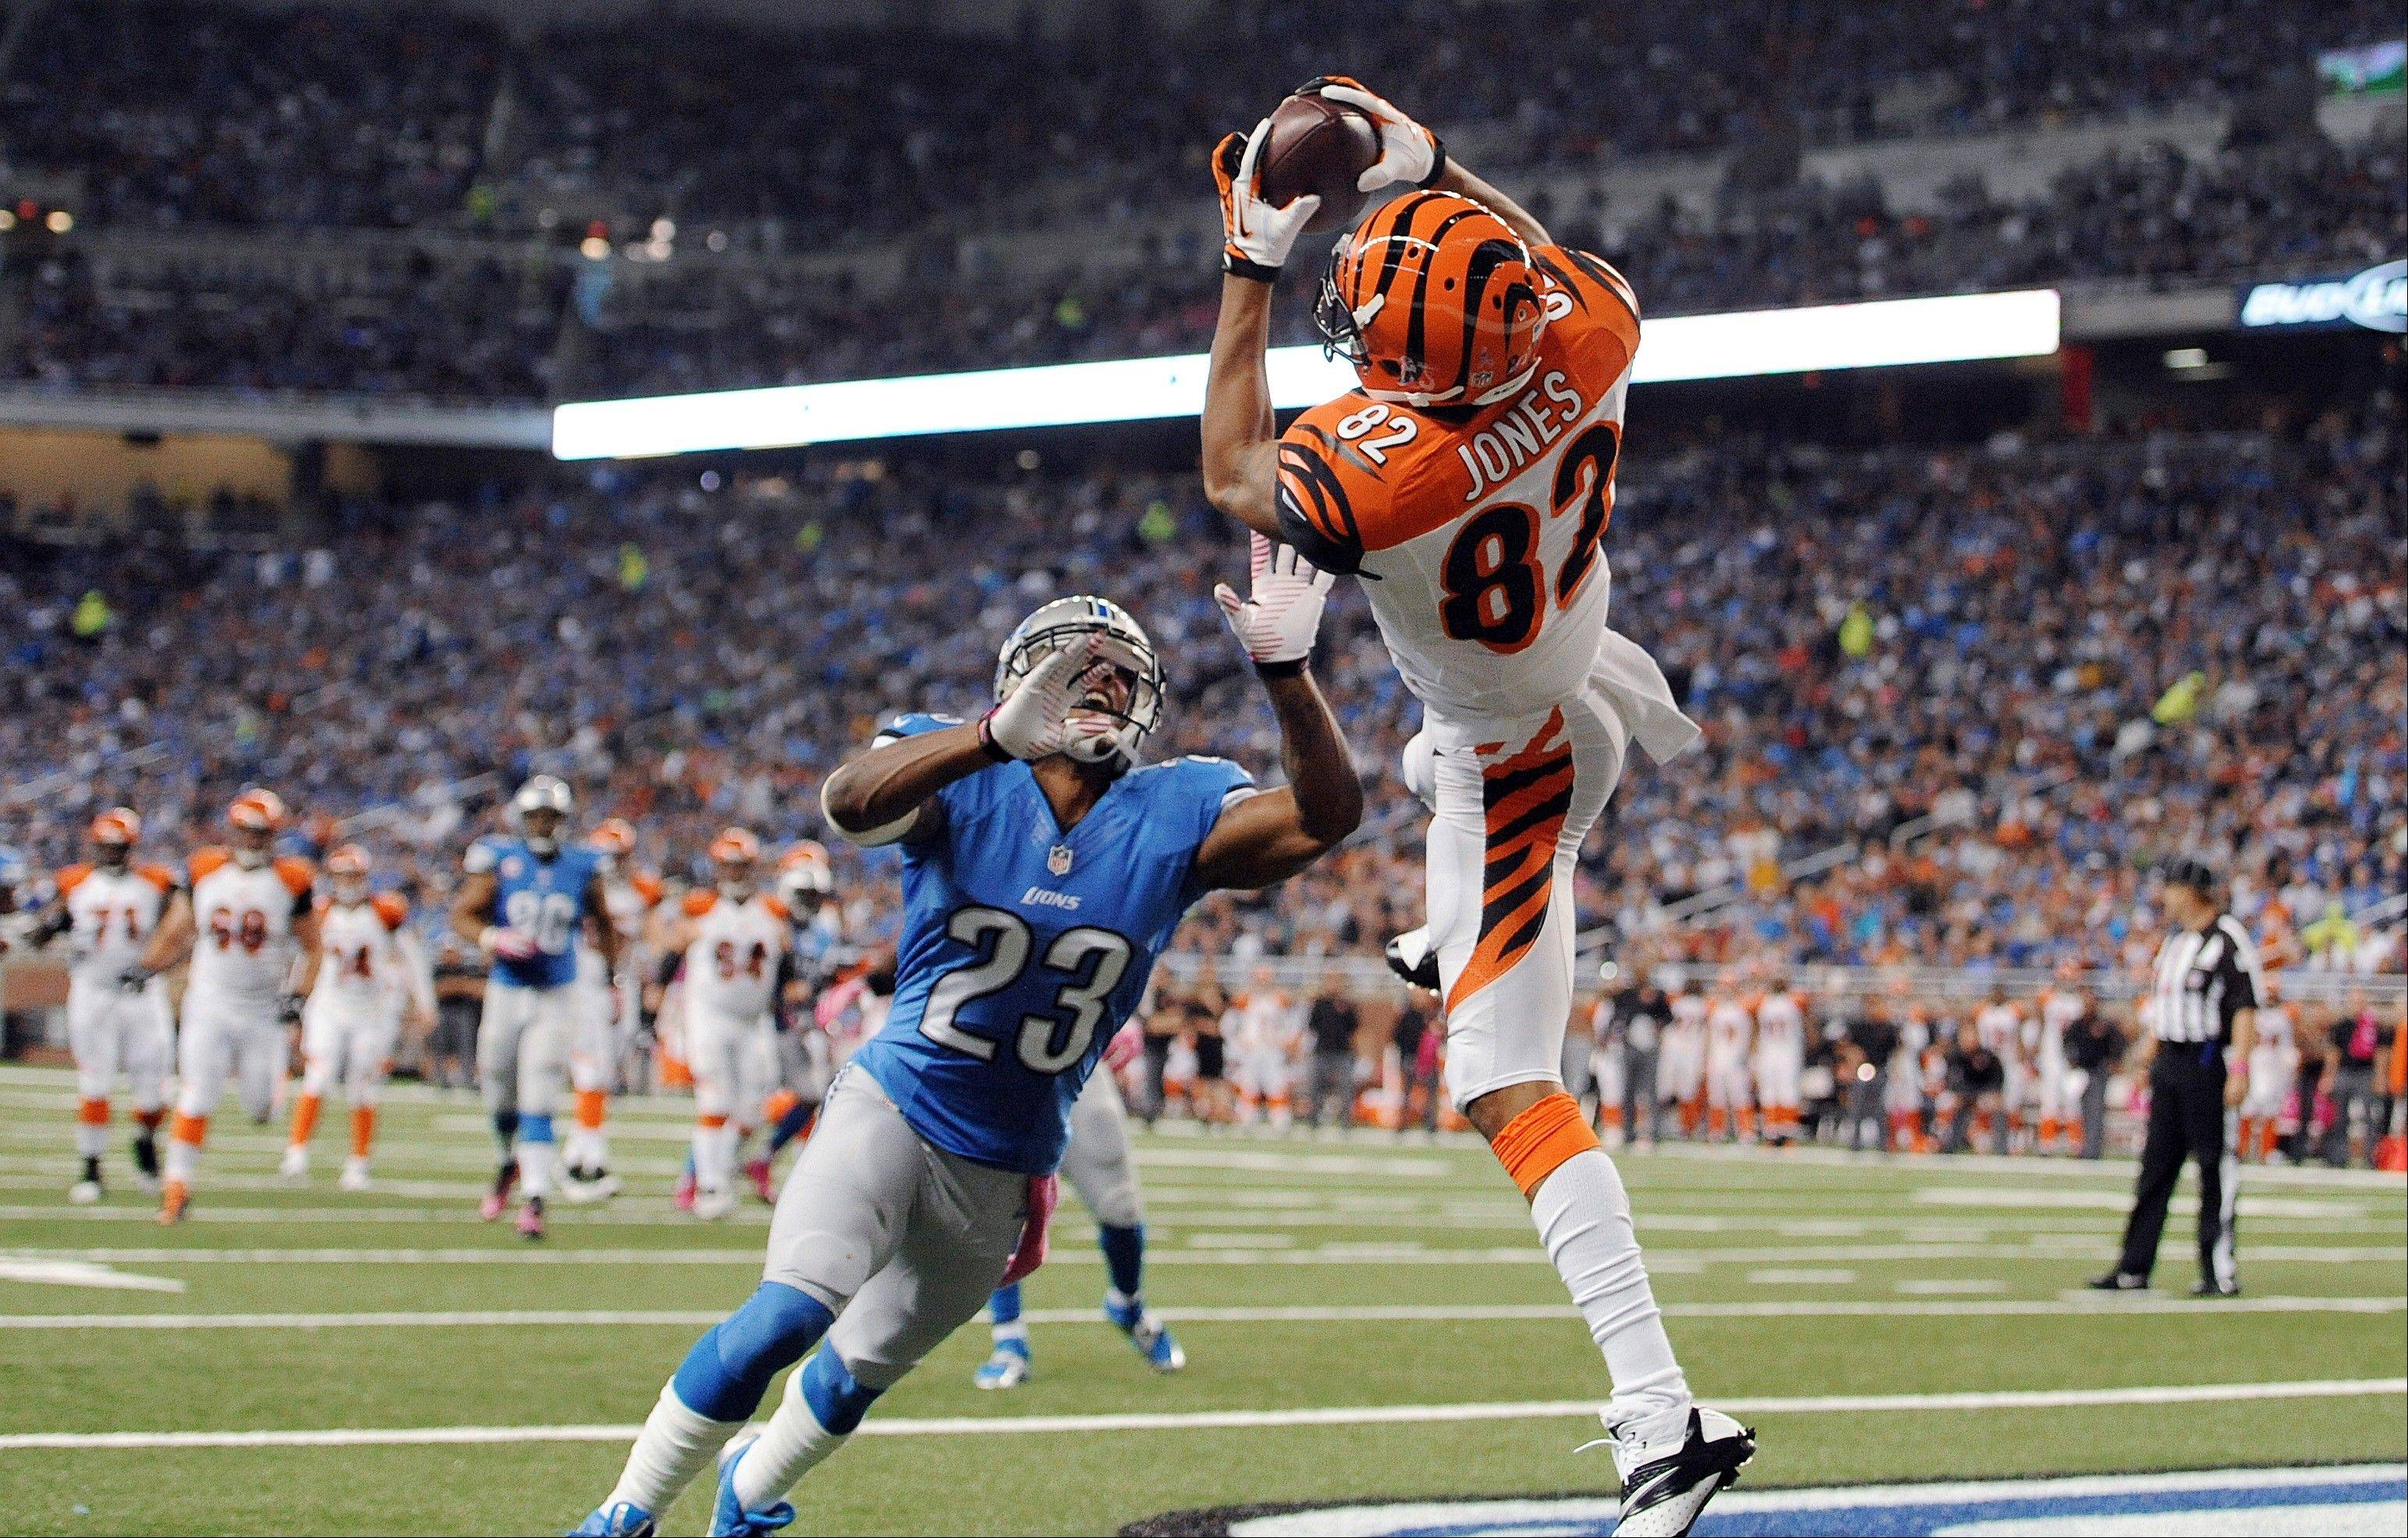 Cincinnati Bengals' Marvin Jones (82) catches a 12-yard touchdown reception as Detroit Lions' Chris Houston (23) defends in the second quarter of an NFL football game on Sunday, Oct. 20, 2013, in Detroit.